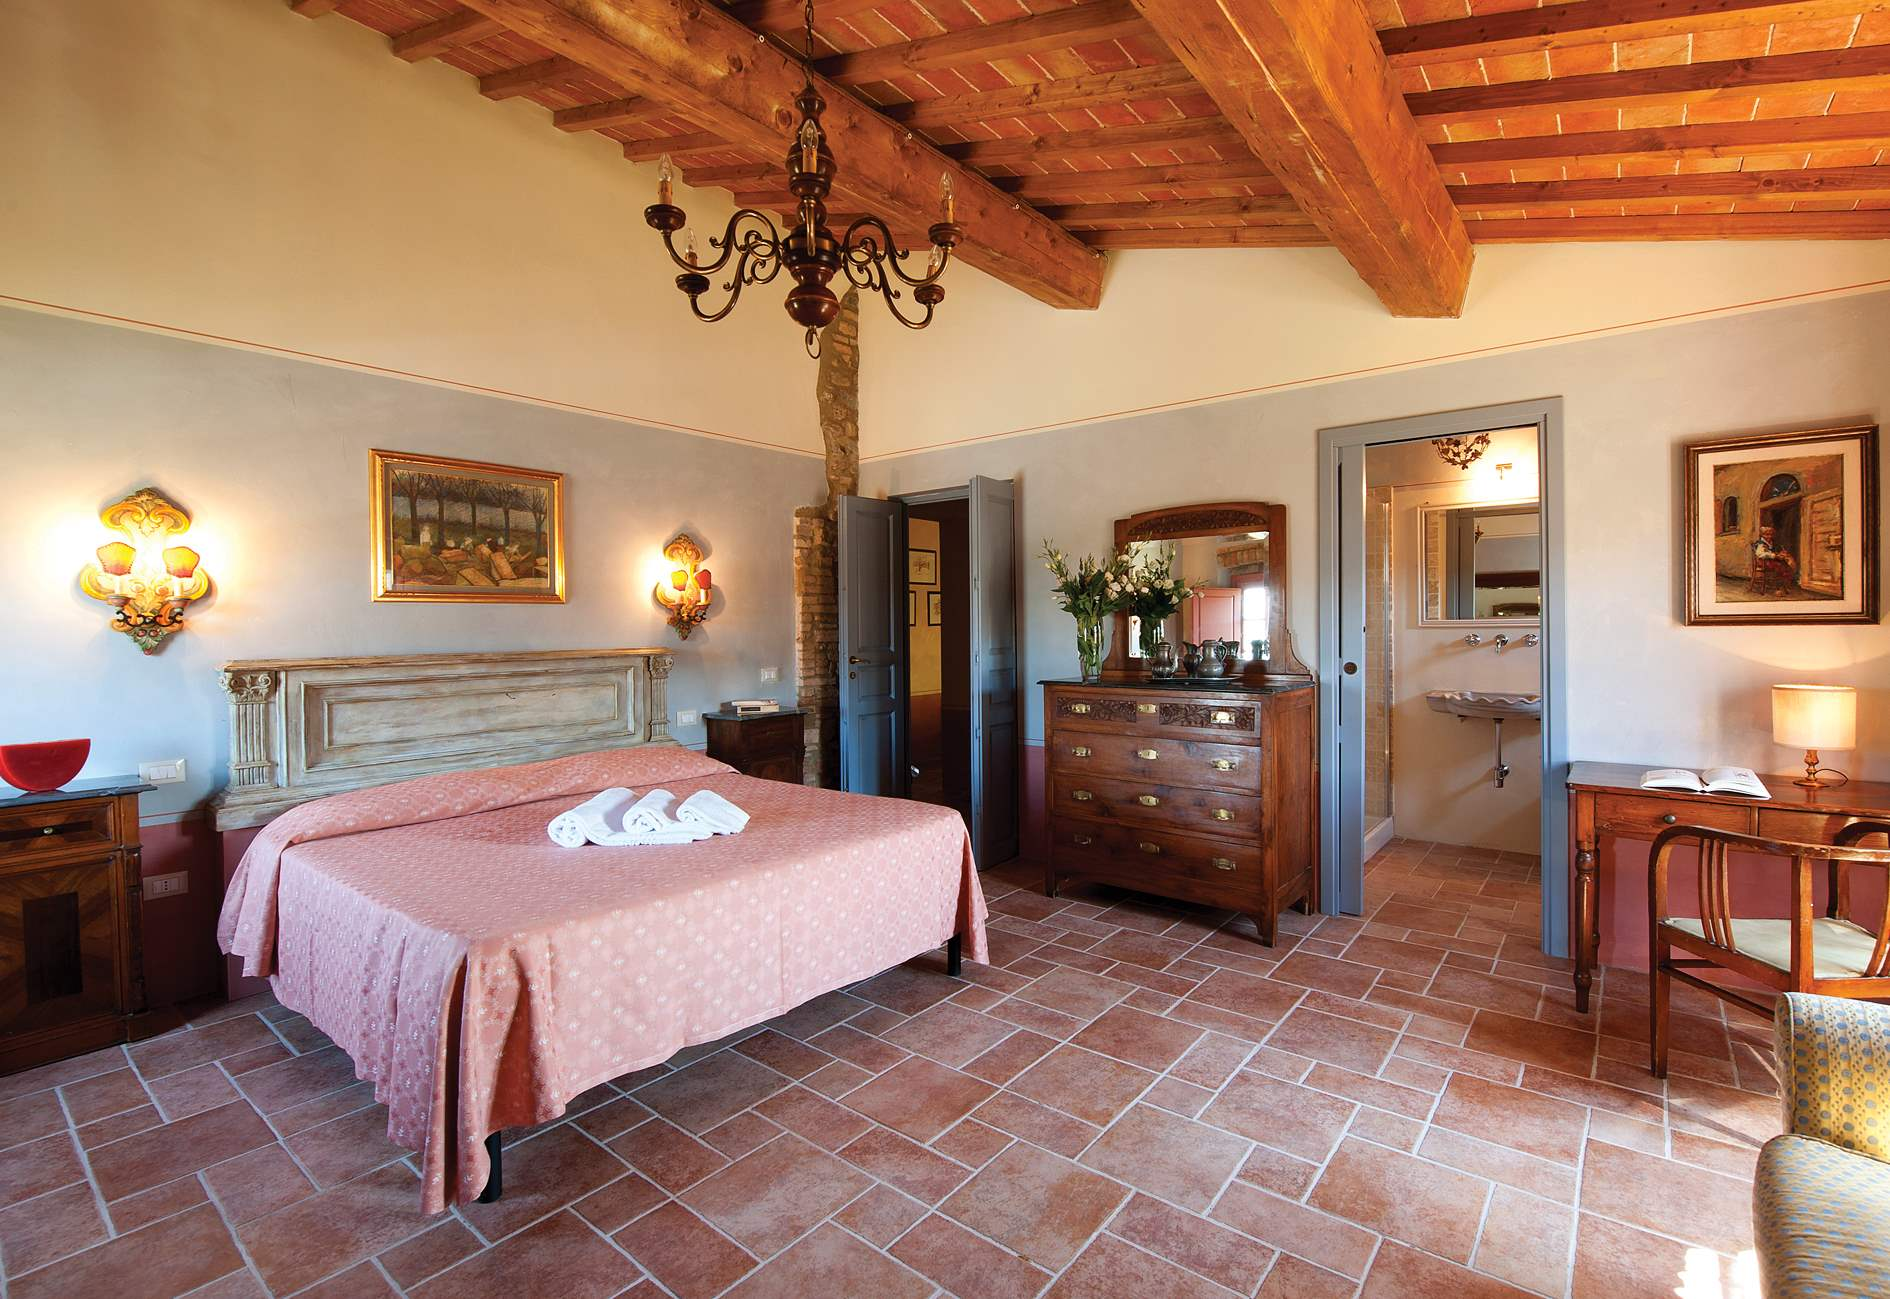 Podere I Gotti, 5 bedroom villa in Tuscany Coast, Tuscany Photo #14